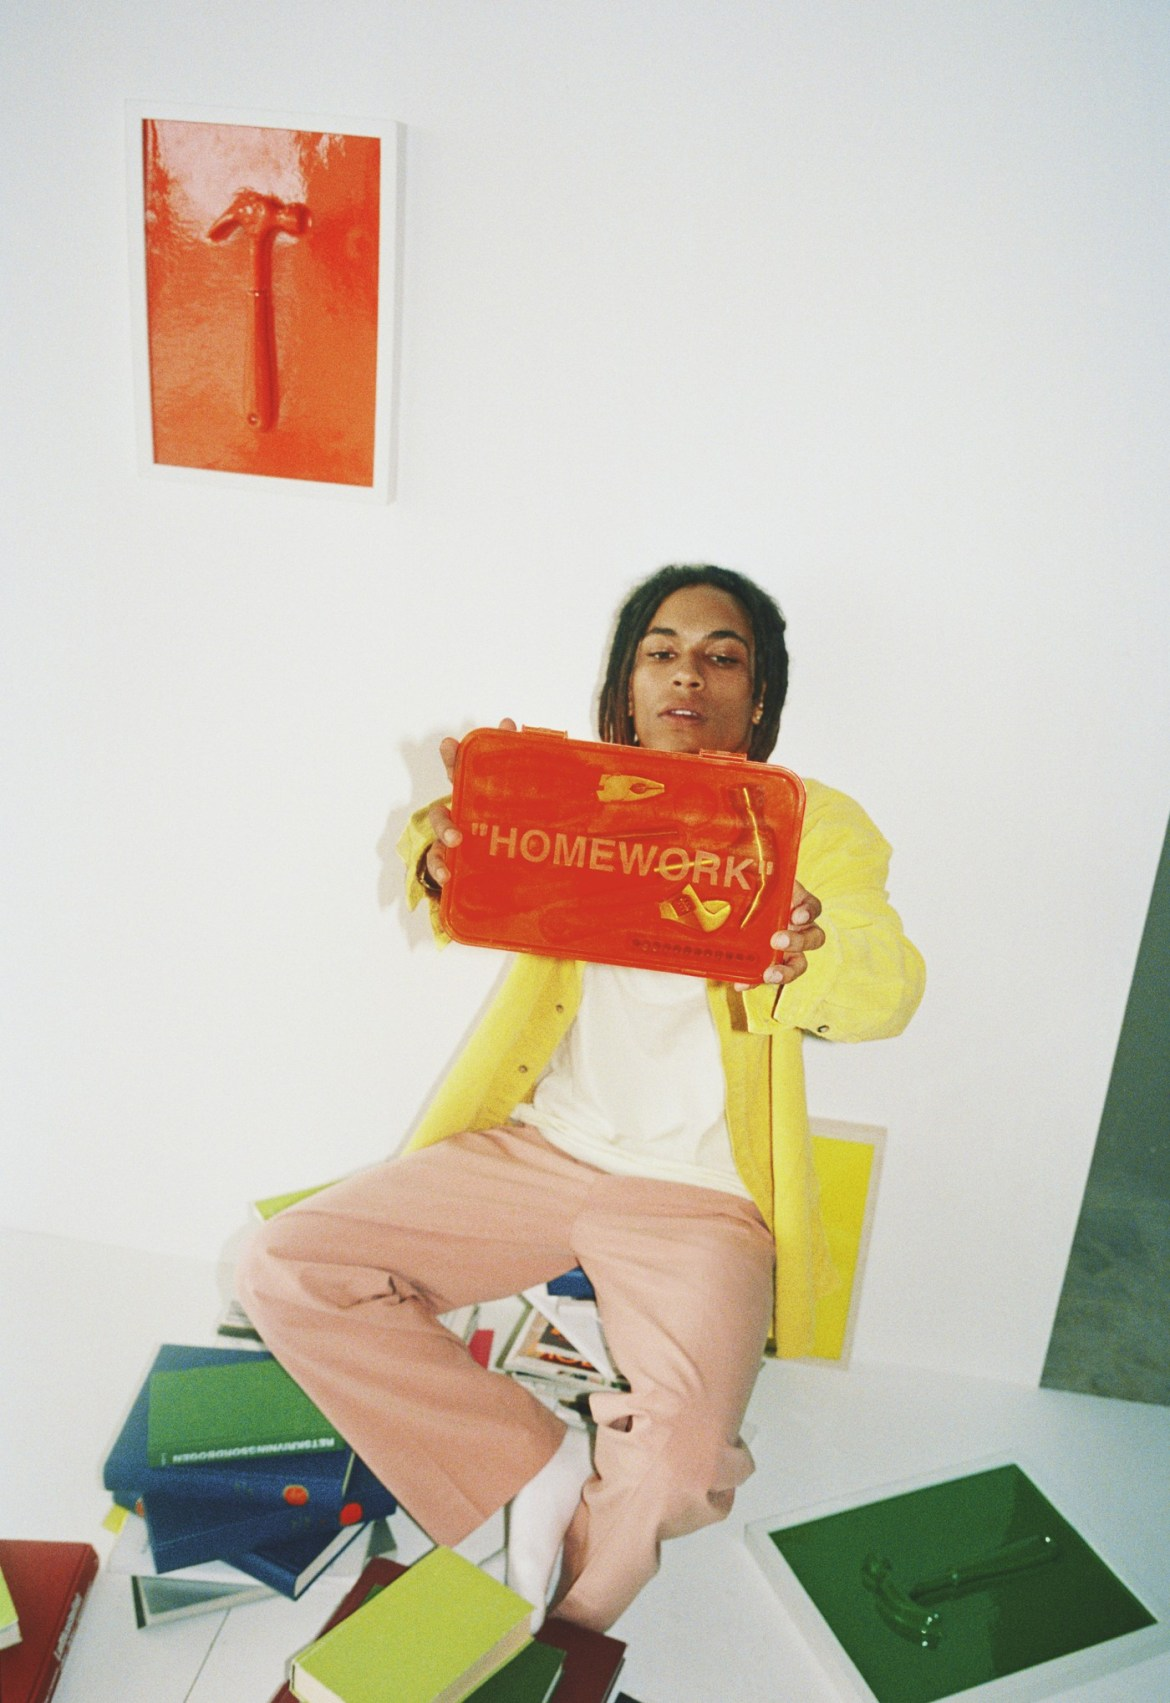 a boy with an Off-White bag